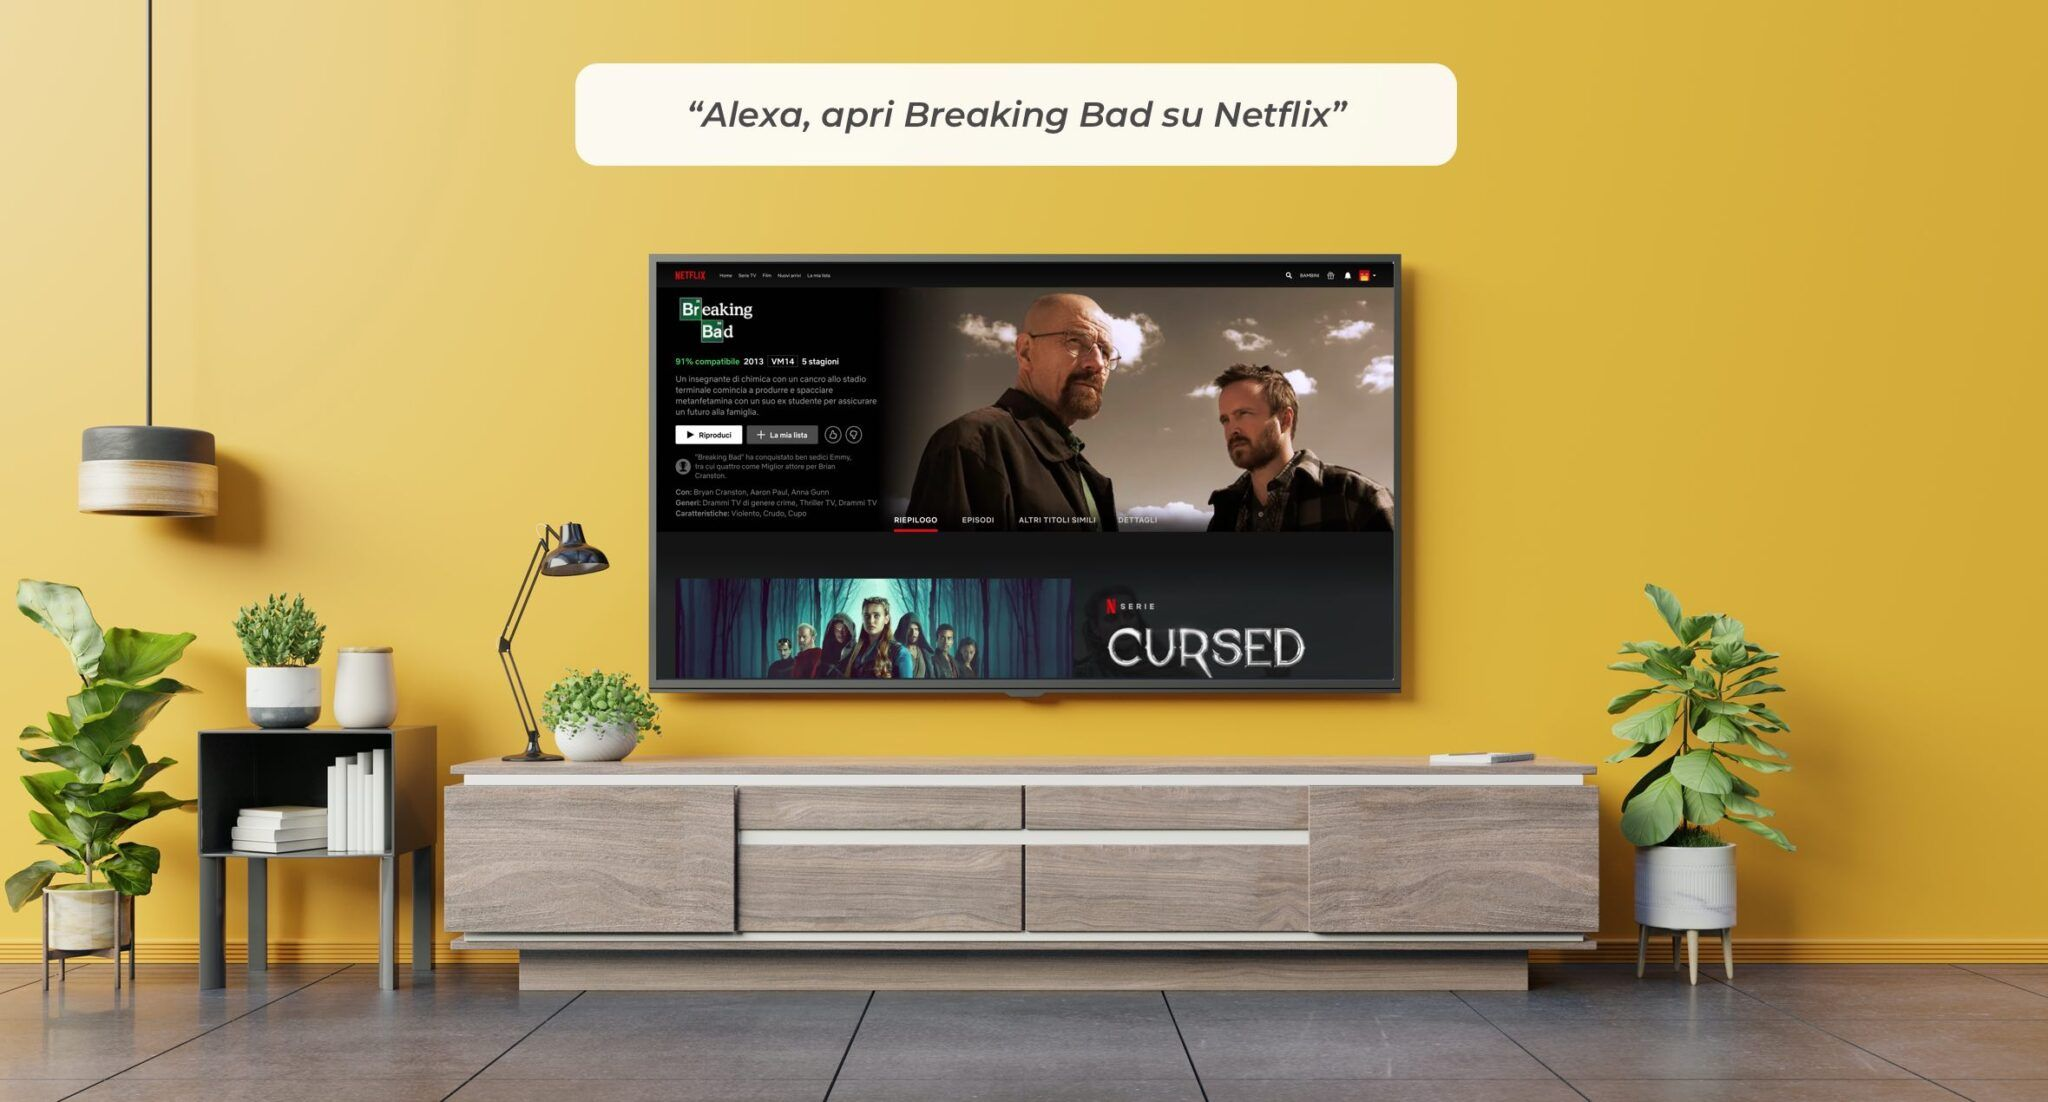 TV compatibili con alexa